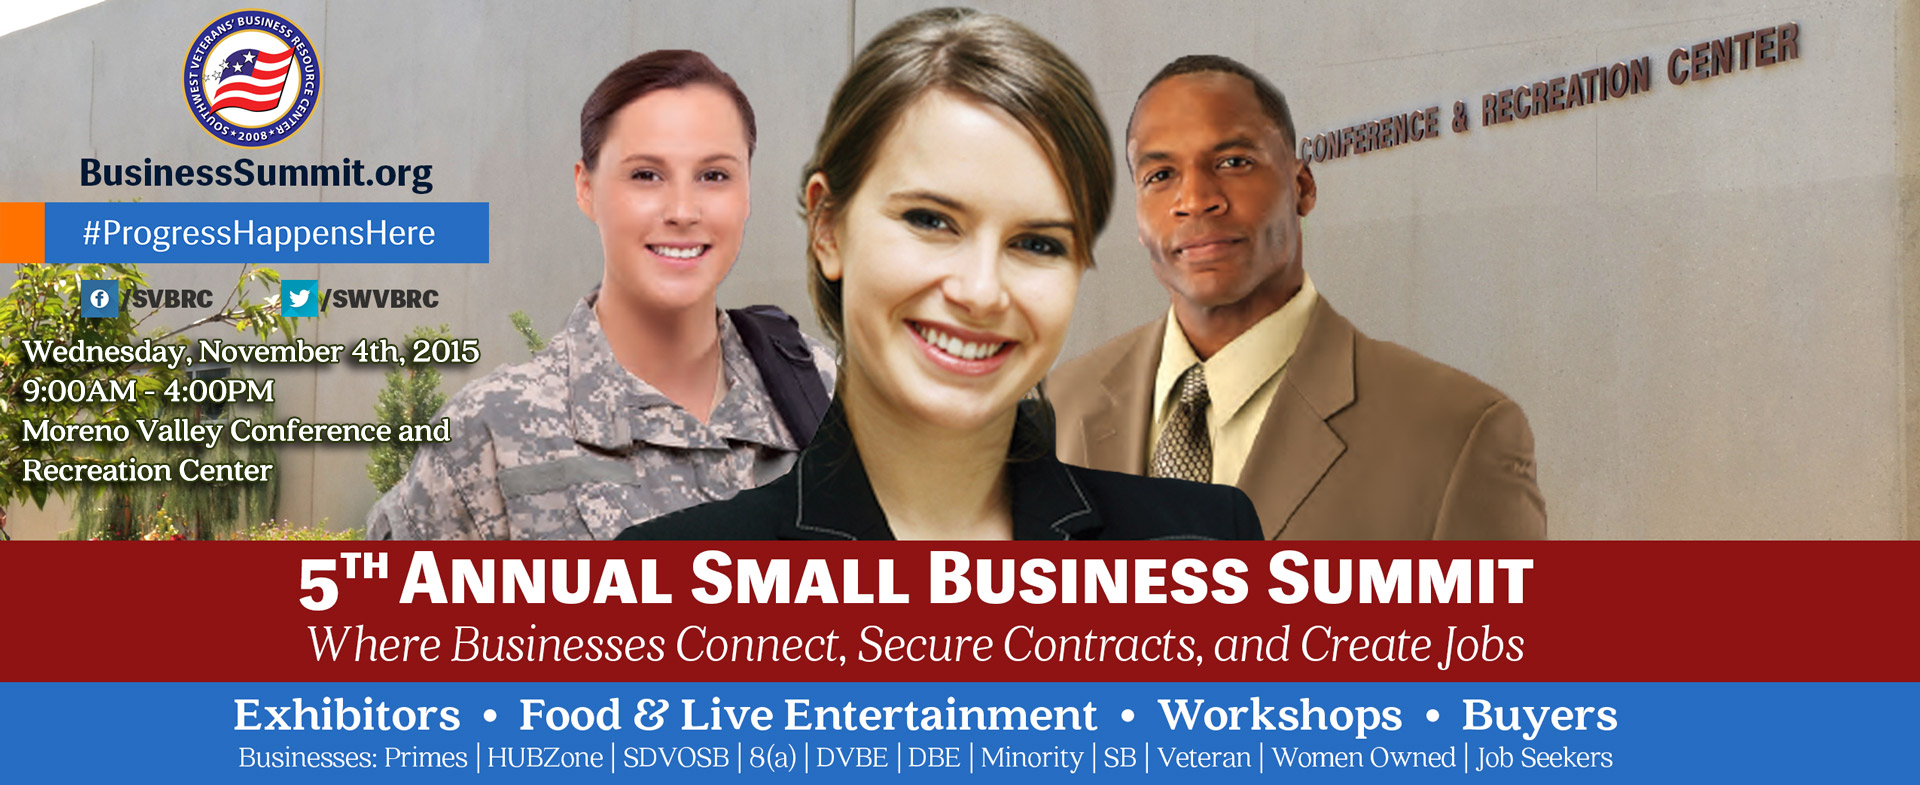 5th Annual Business Summit